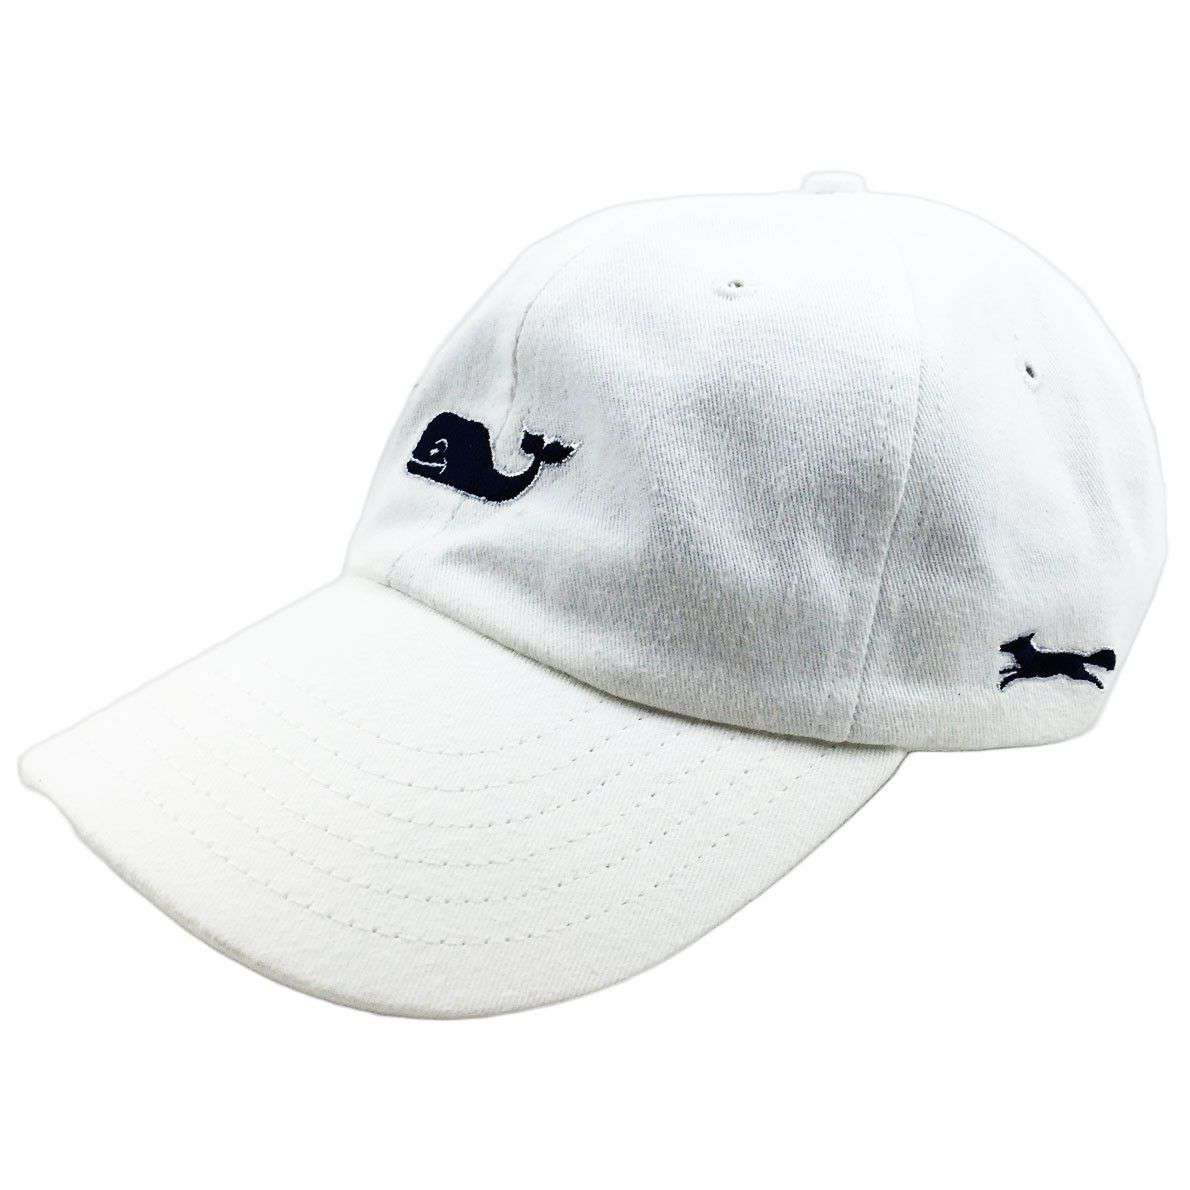 5e4ca0608 Whale Logo Baseball Hat in White w/ Navy Longshanks by Vineyard Vines